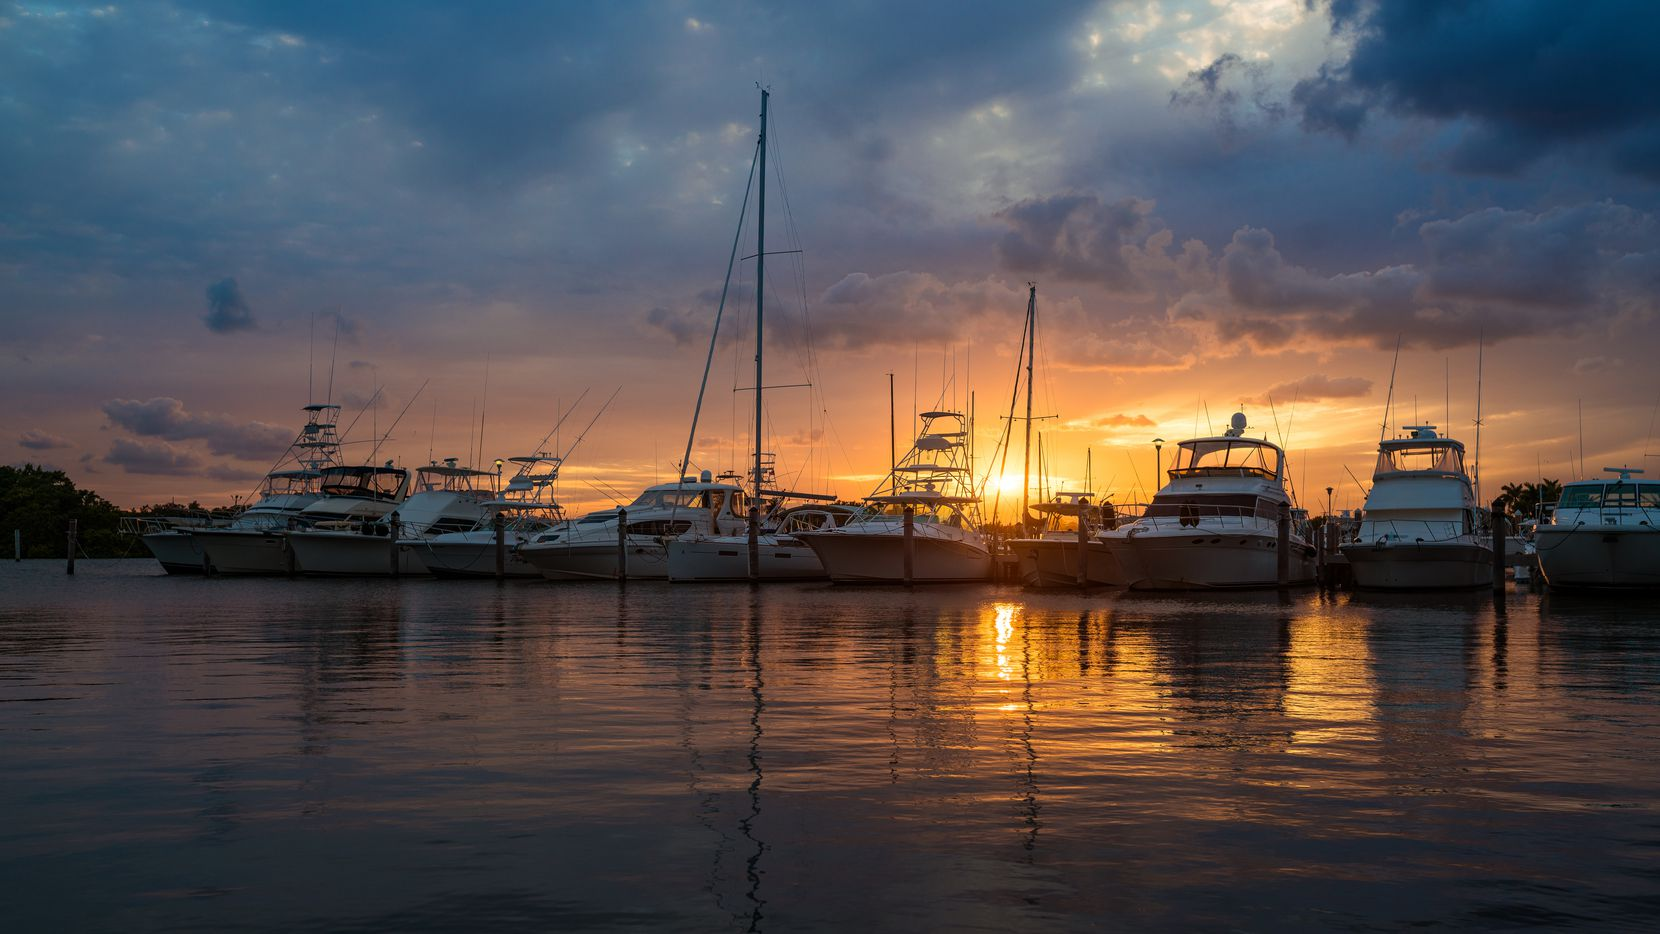 Dallas-based Safe Harbor Marinas LLC operates 90 facilities in 20 states.